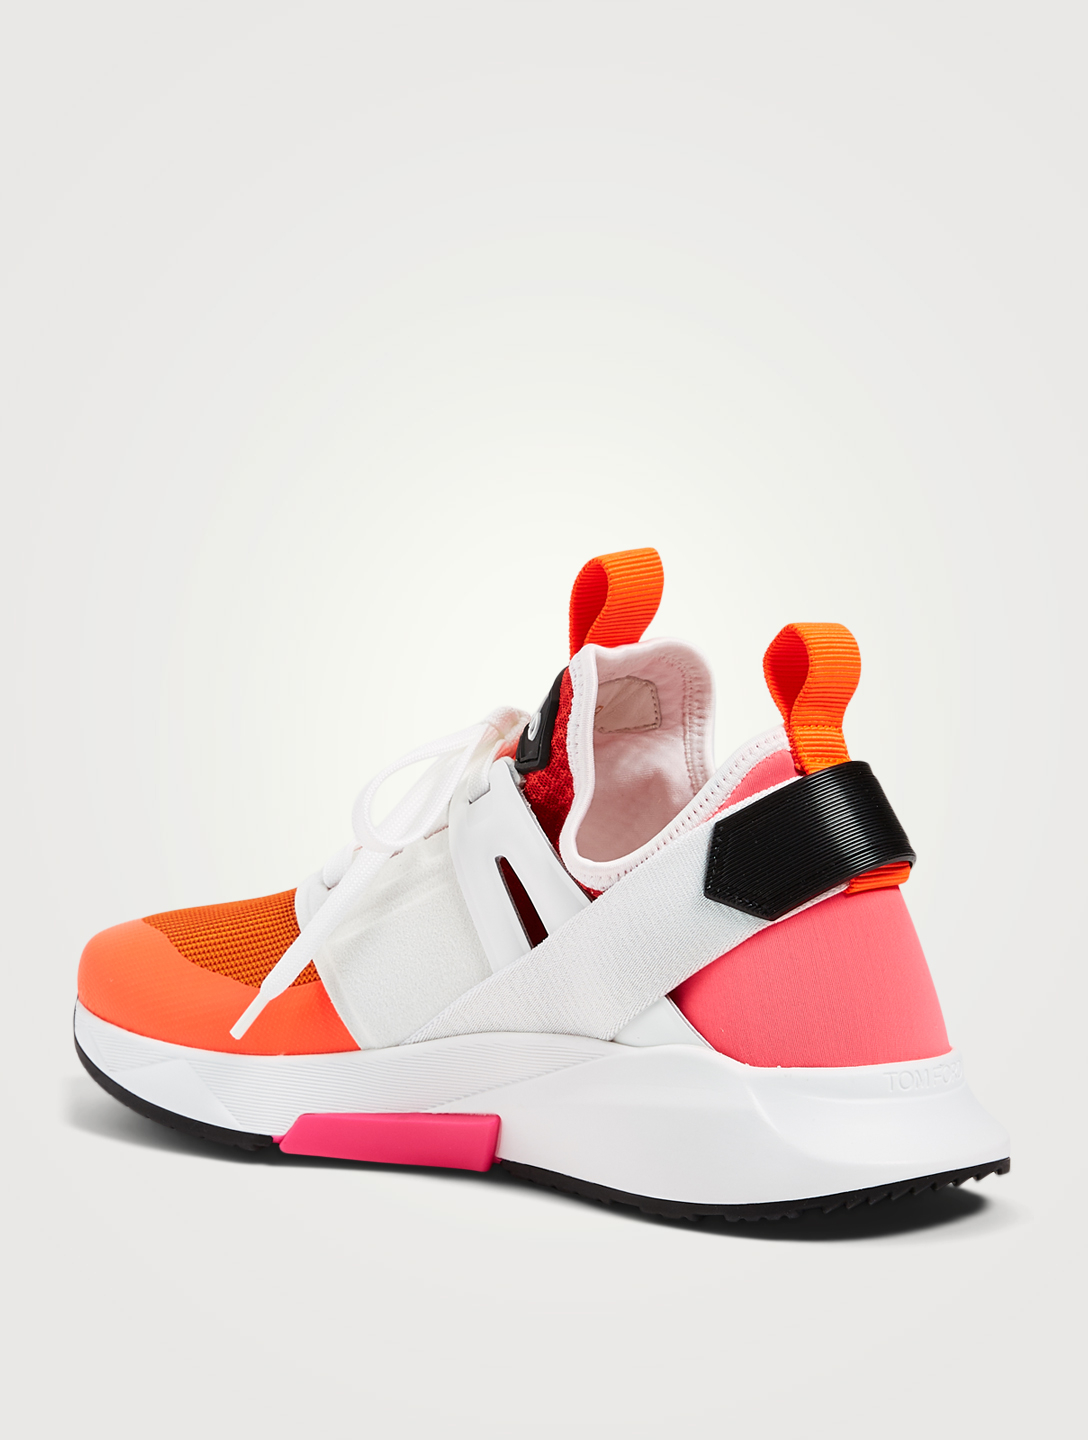 TOM FORD Sneakers Jago en maille de nylon Hommes Orange